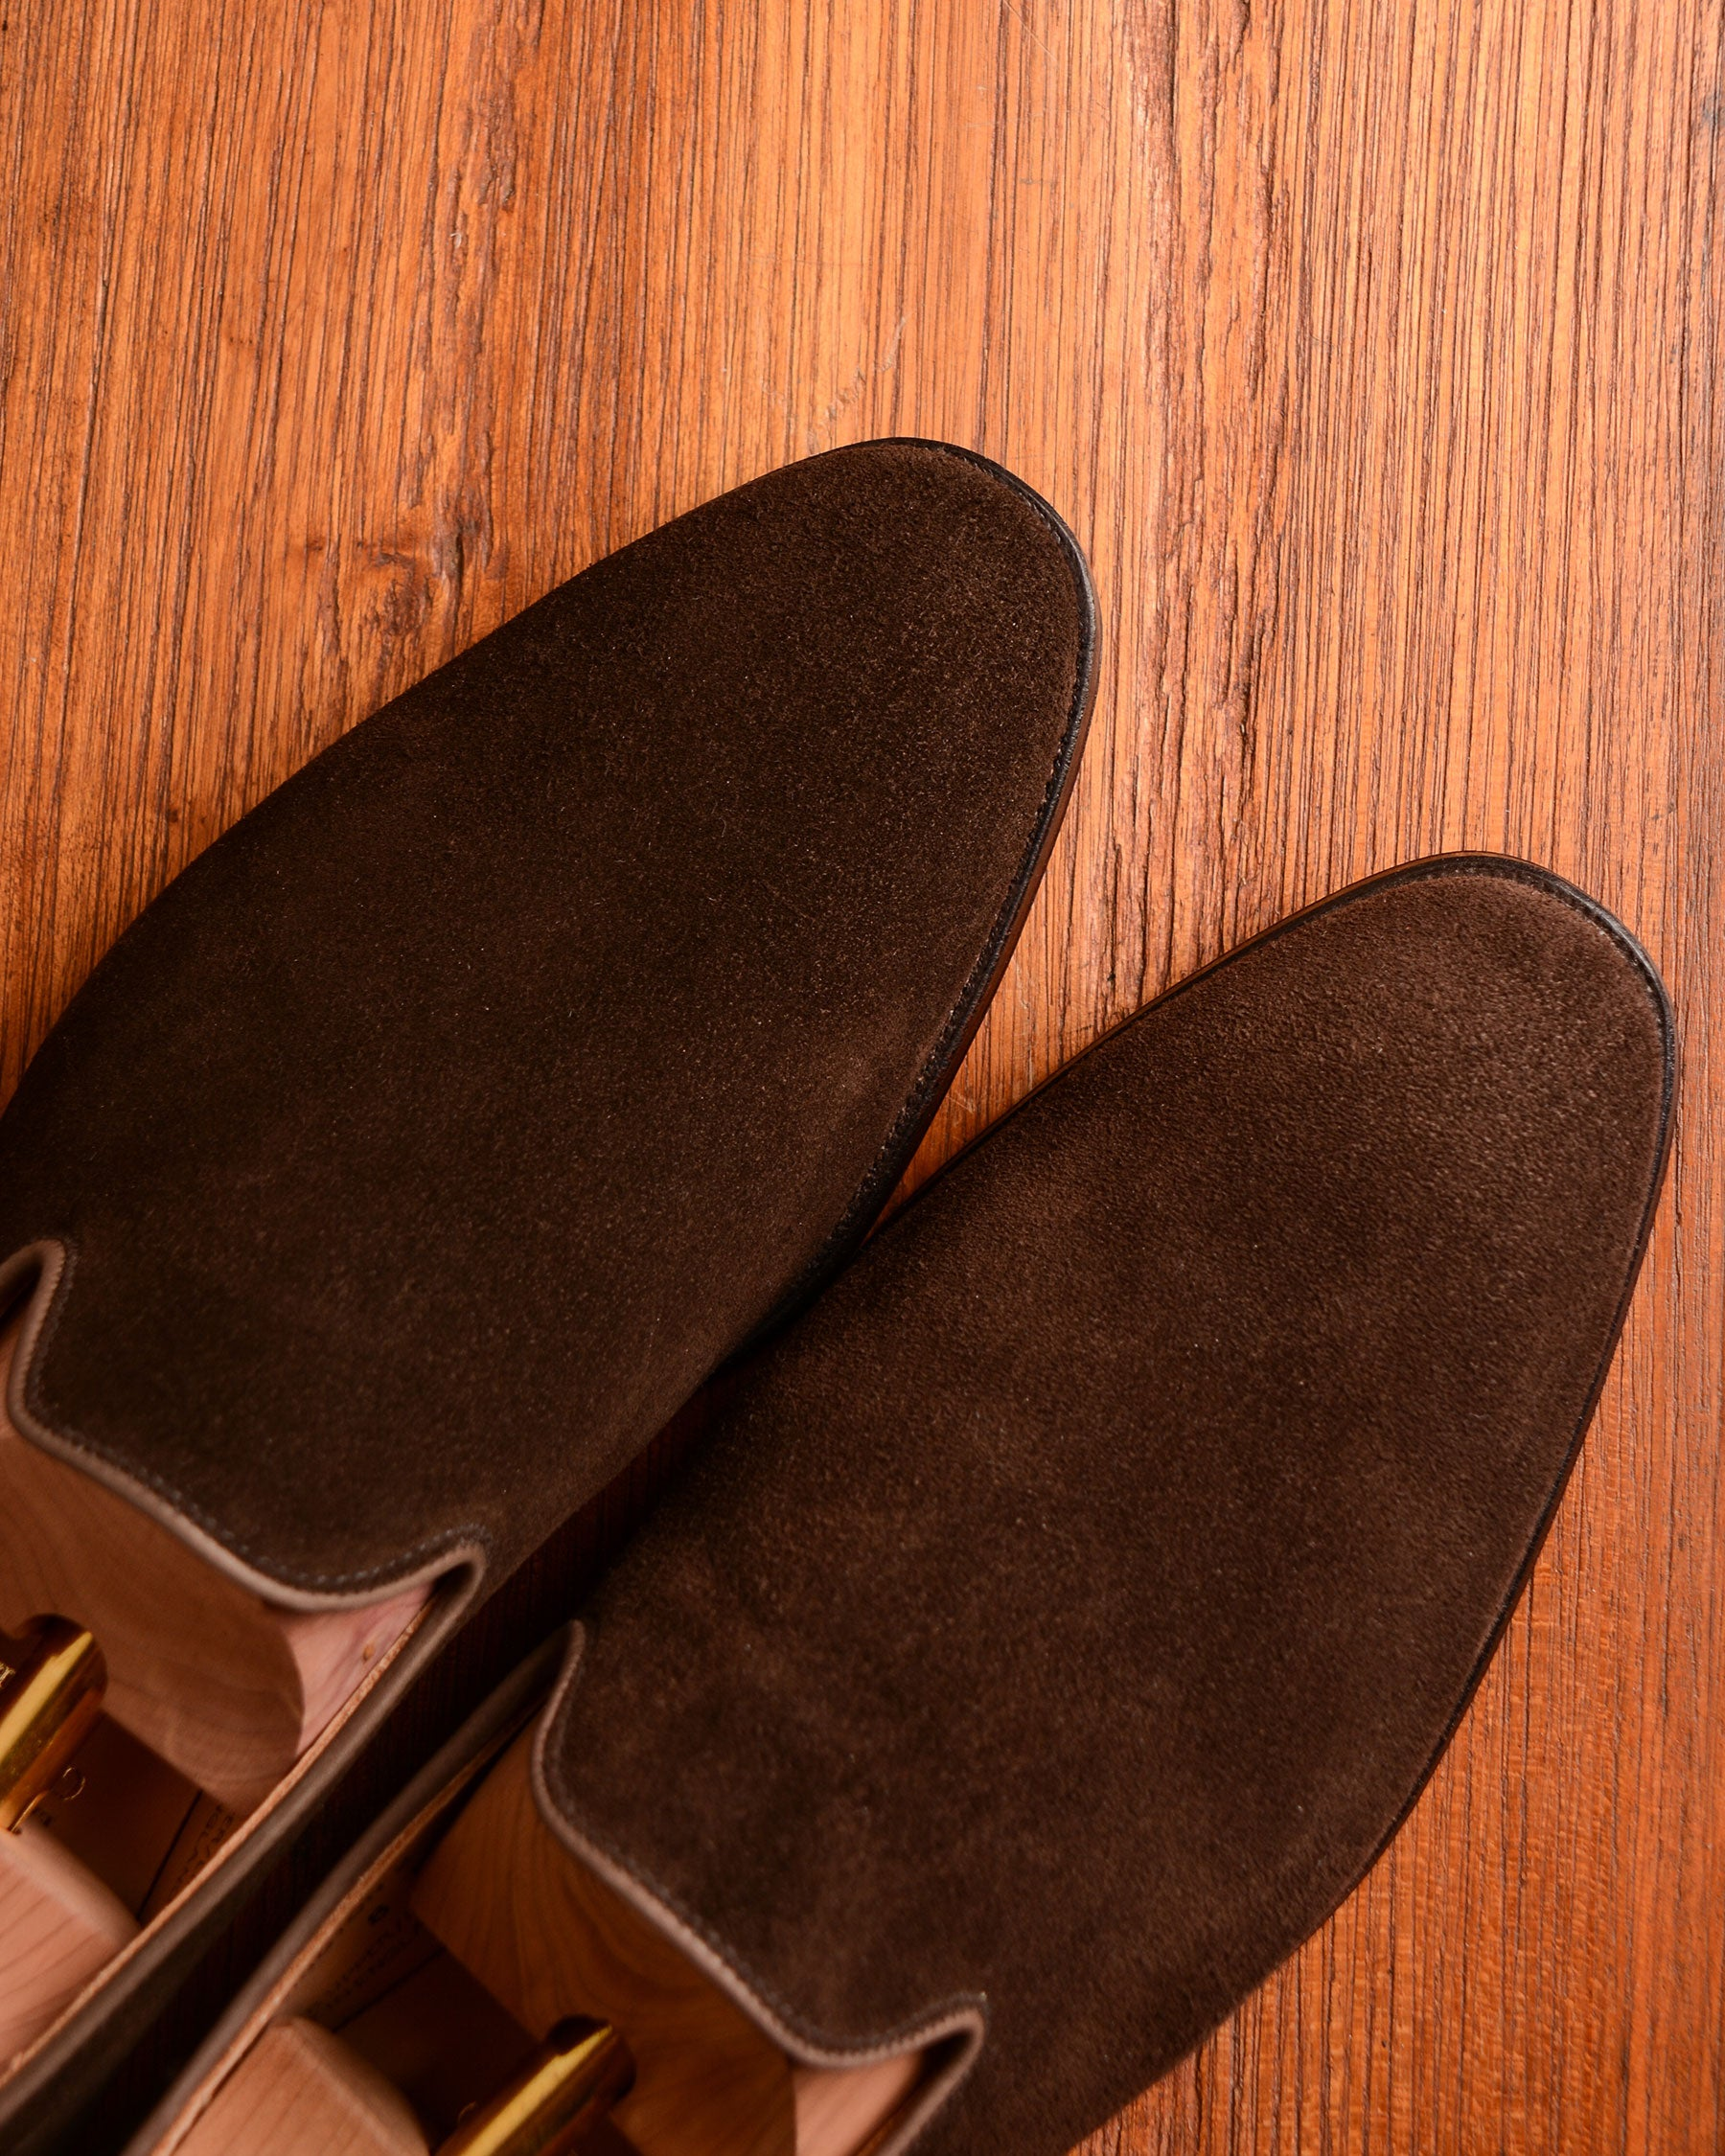 Crockett & Jones Kensington - Dark Brown Suede